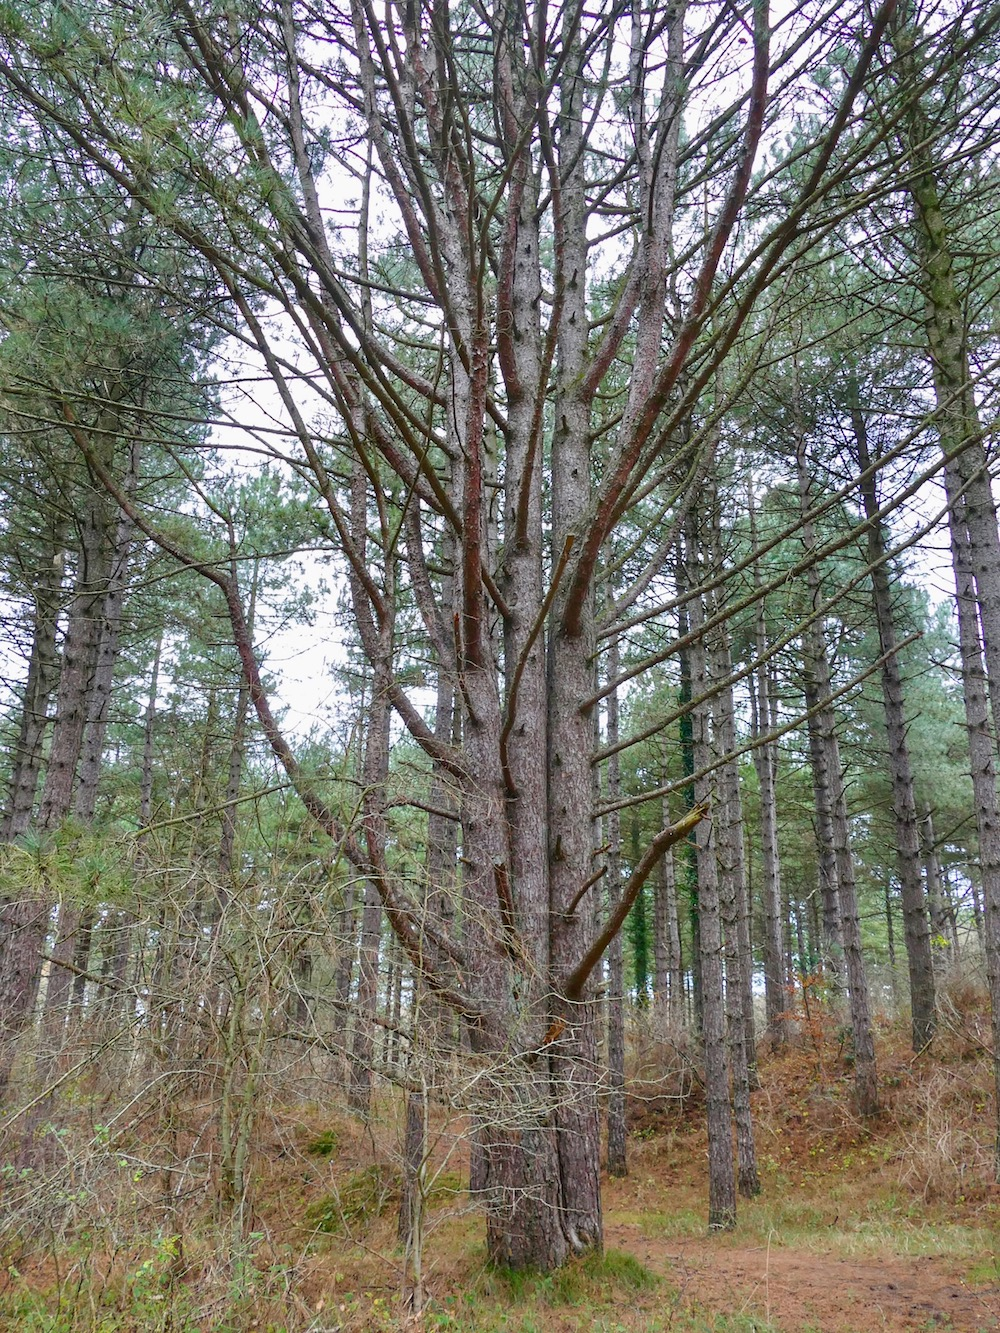 Siamese twin trees in National Park Kennemerduinen |curlytraveller.com